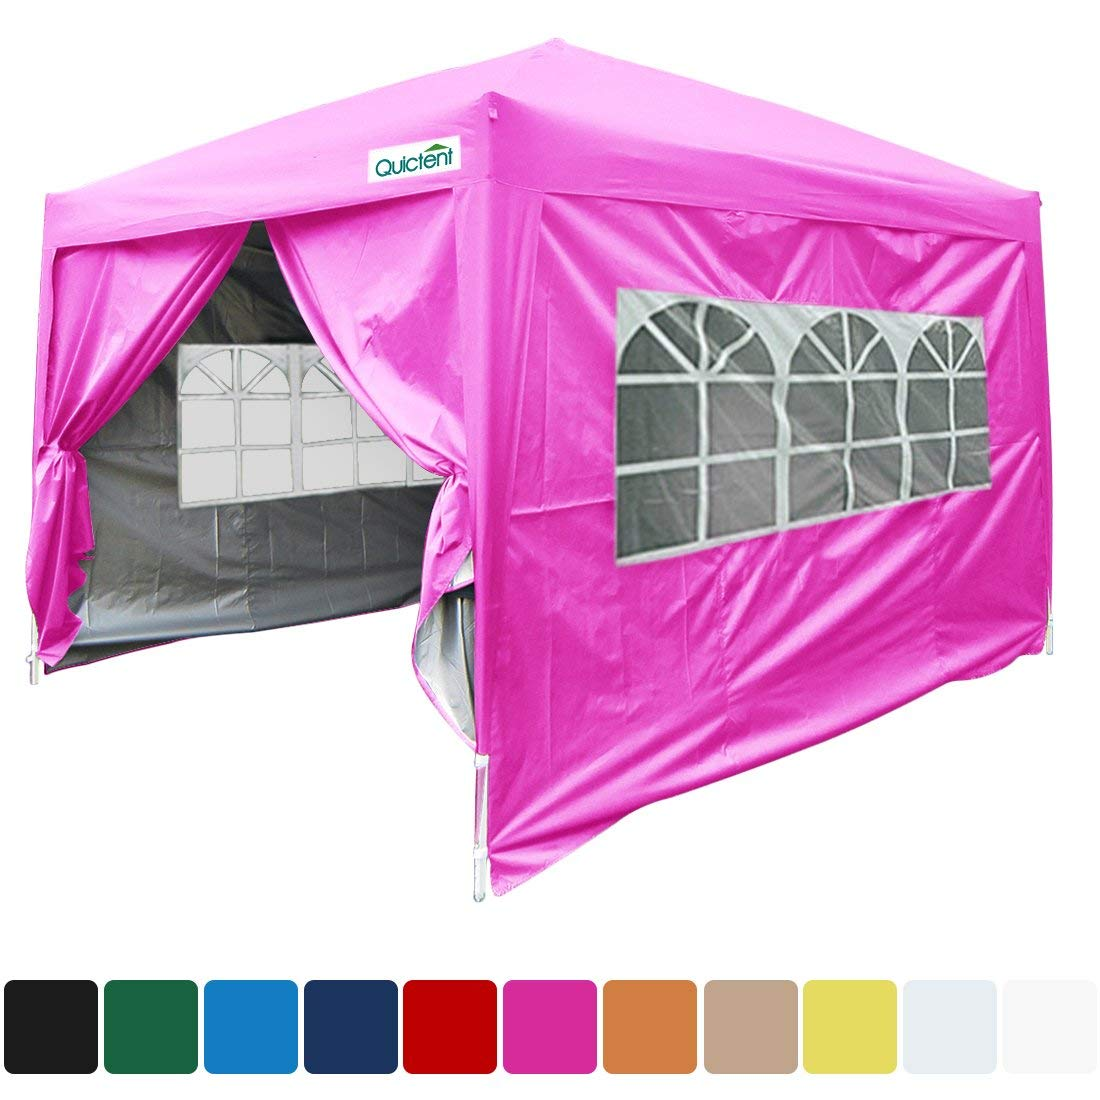 Cheap Canopy 8x10, find Canopy 8x10 deals on line at Alibaba com